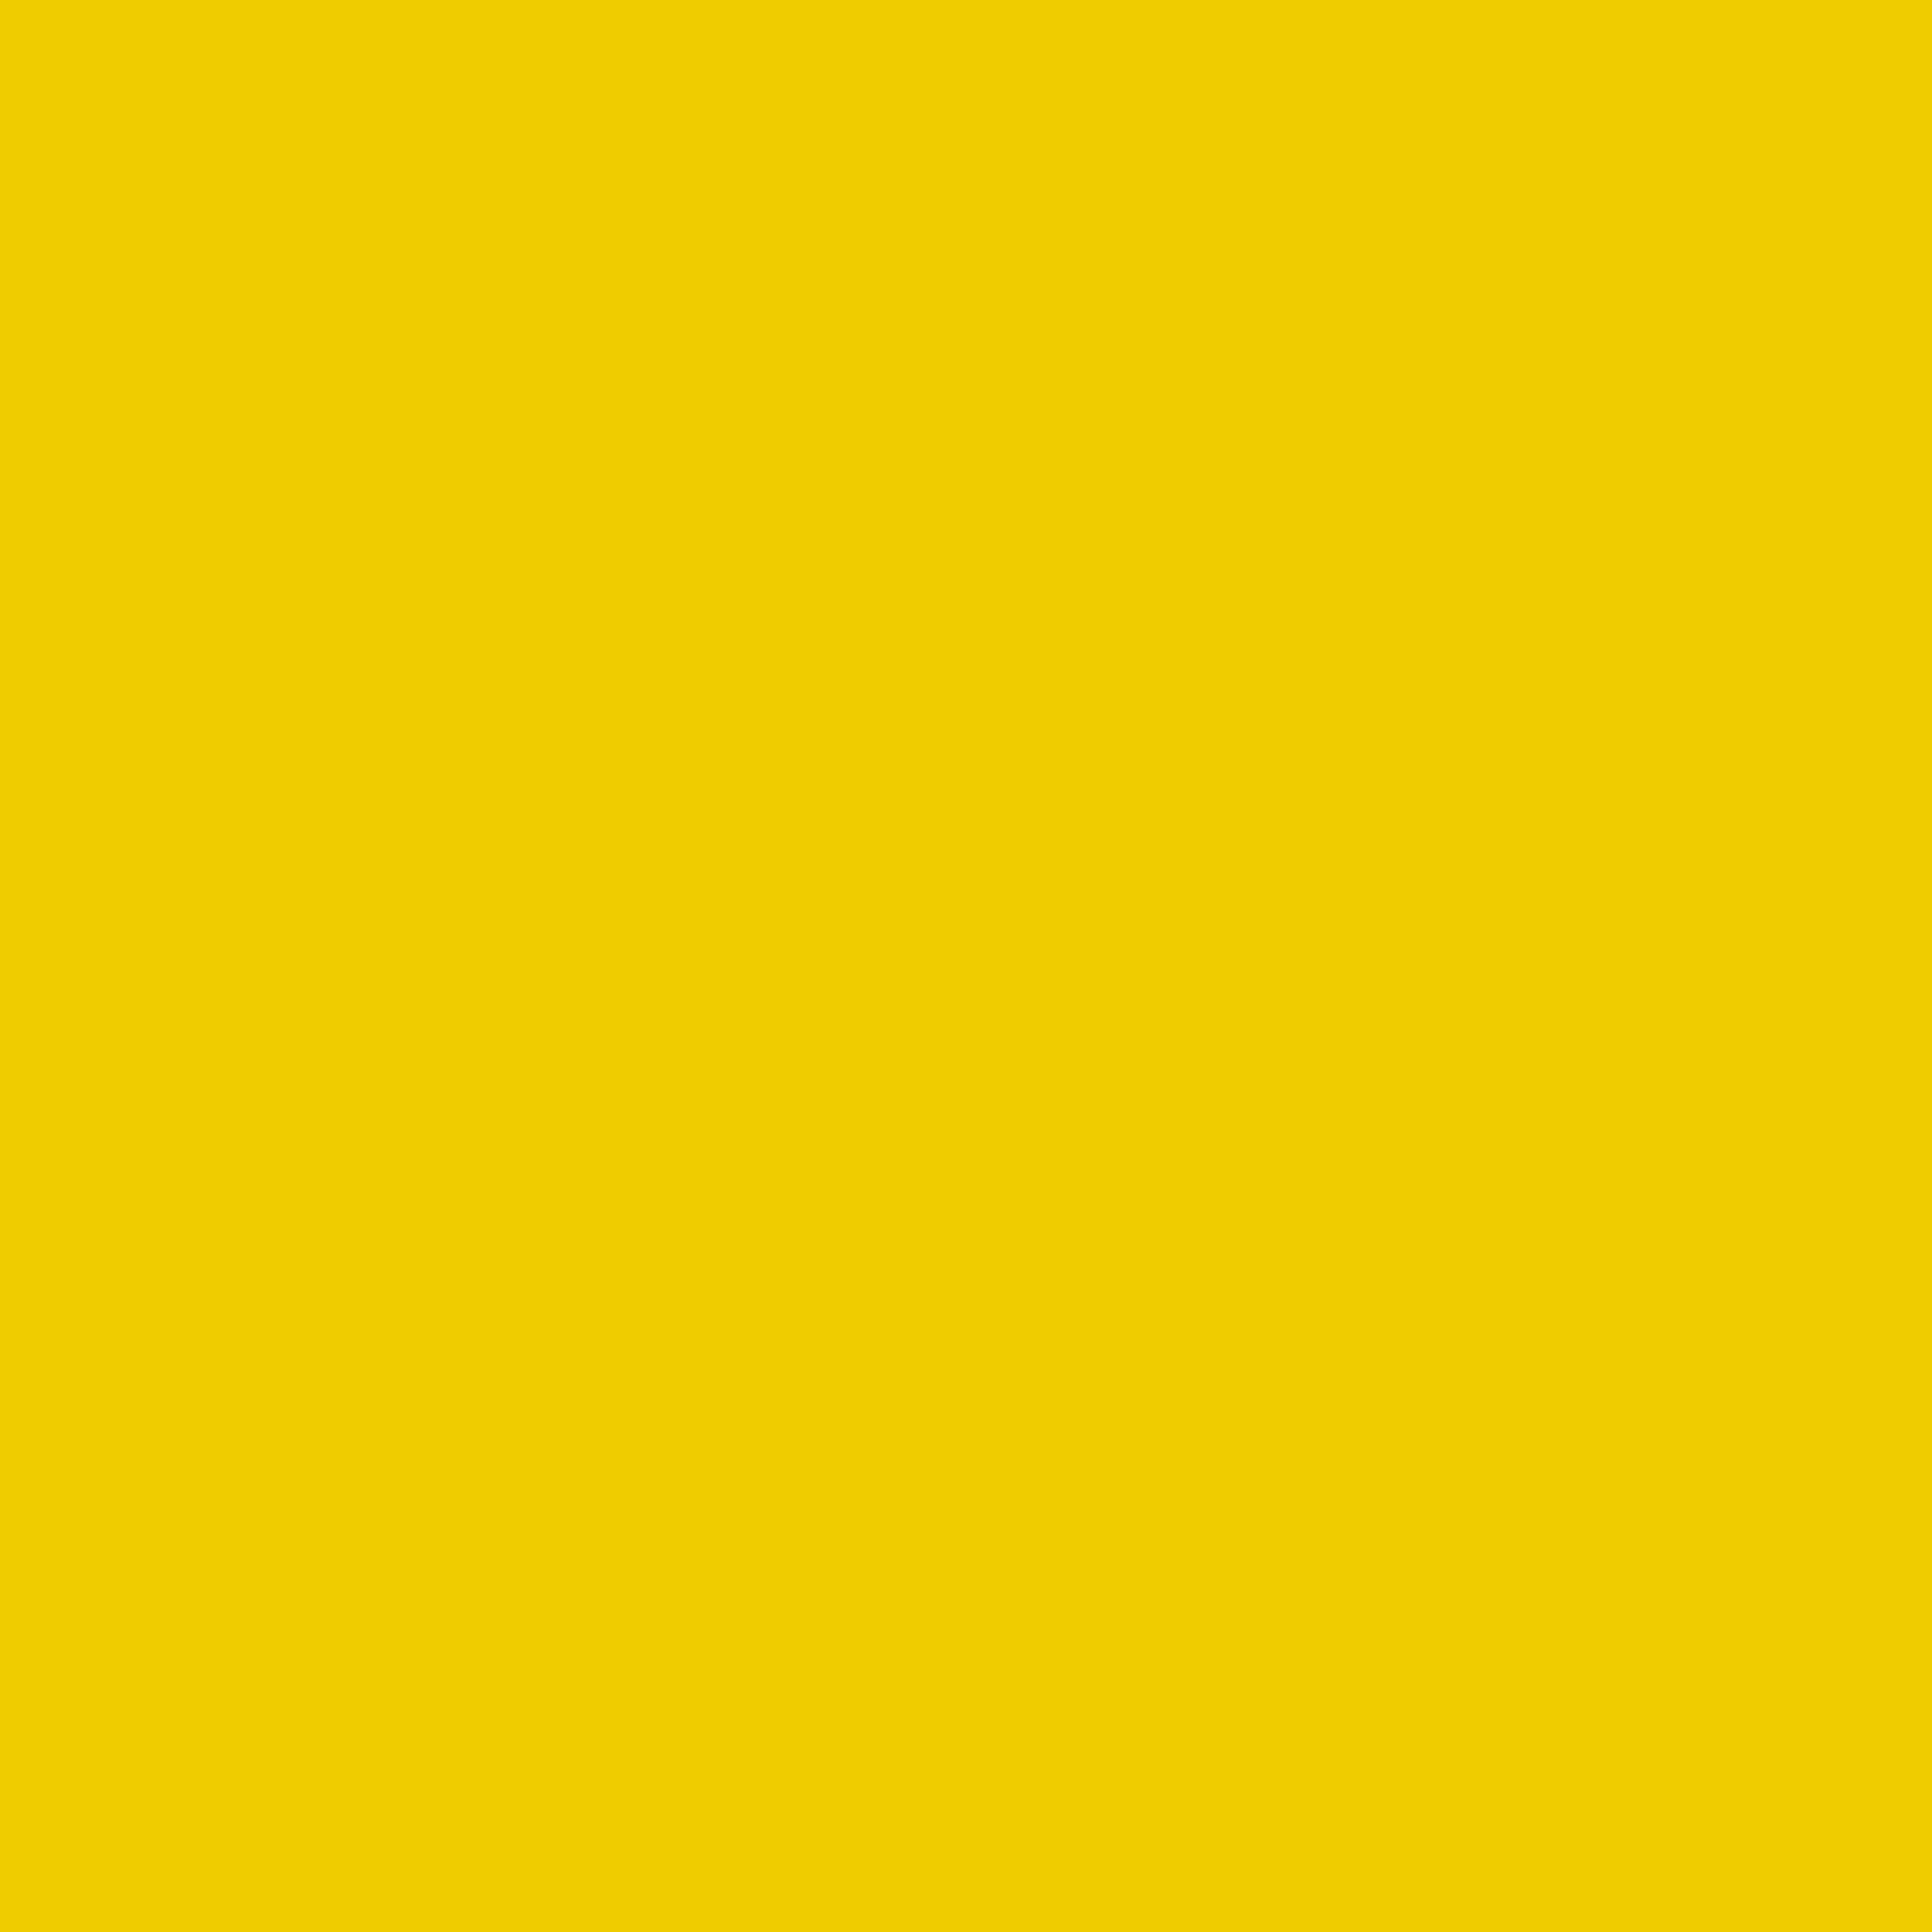 3600x3600 Yellow Munsell Solid Color Background